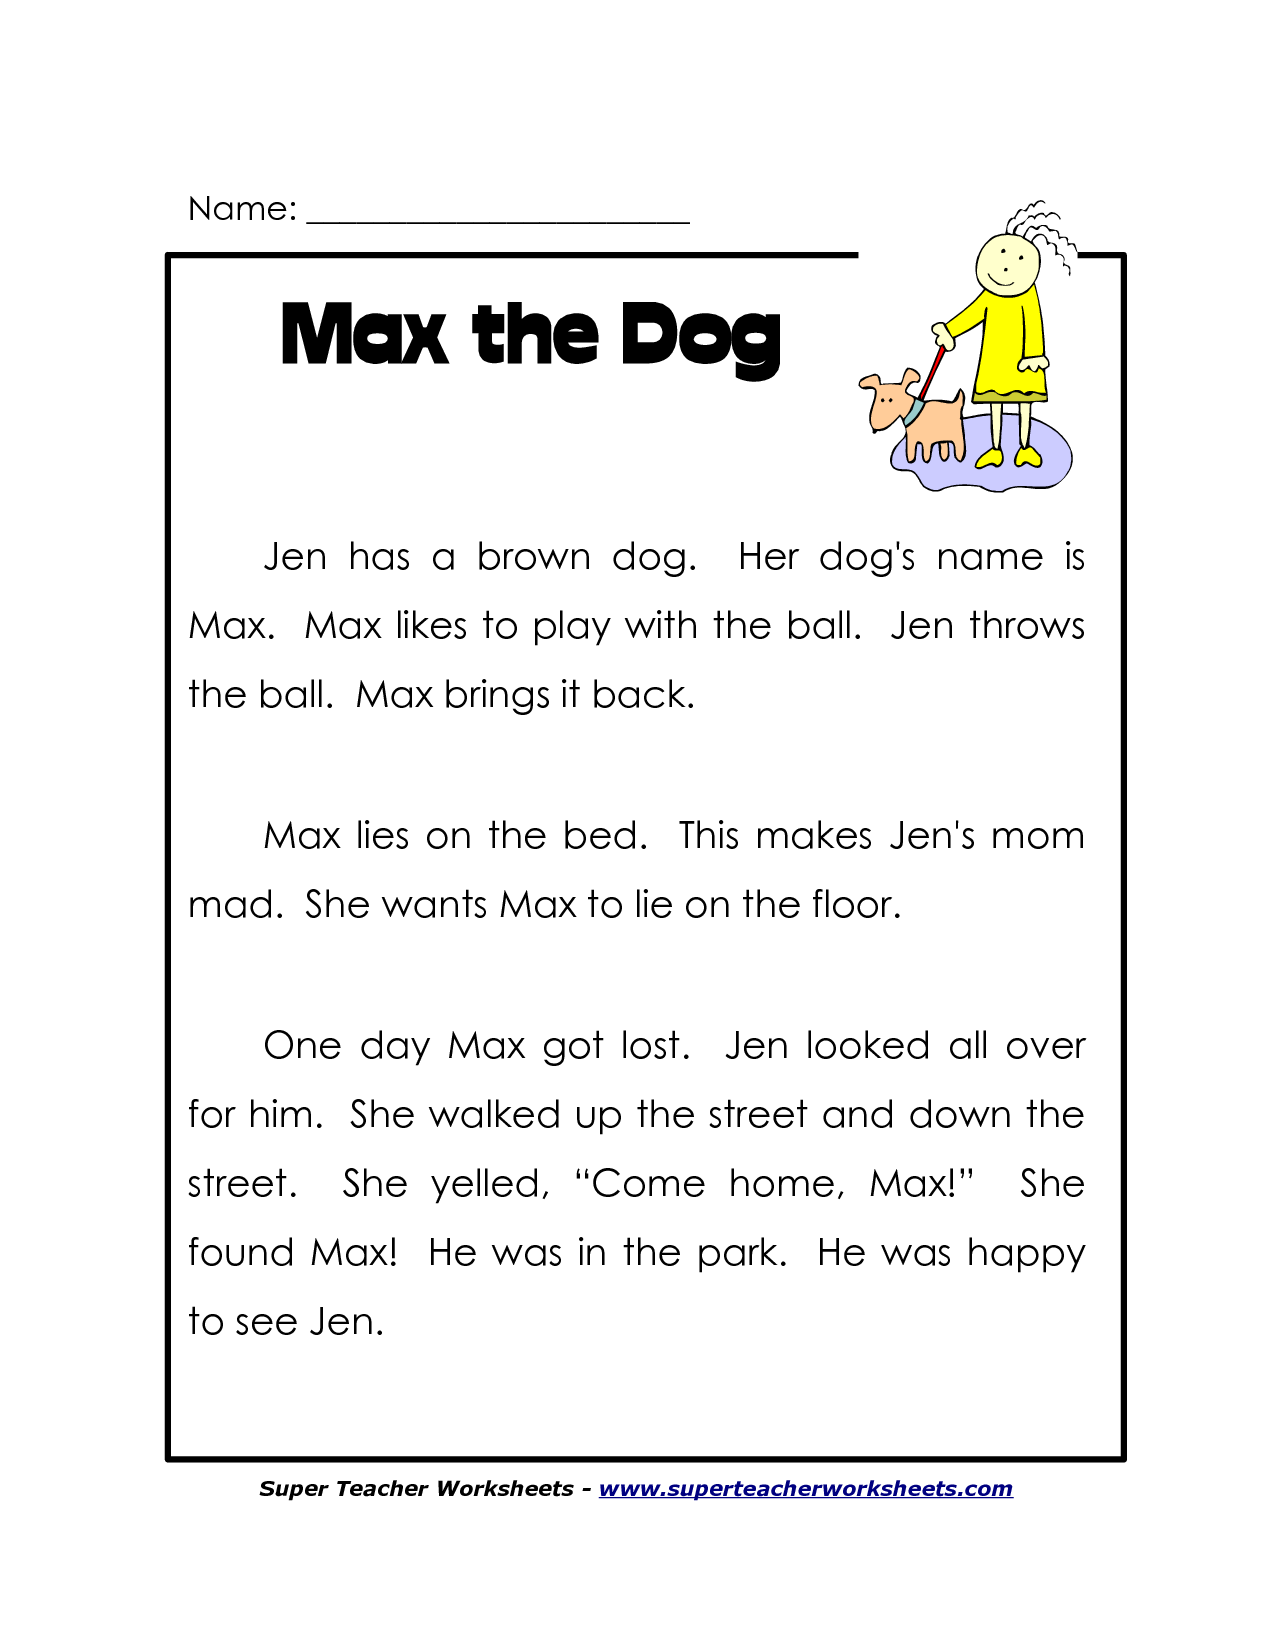 Reading Worksheets Printable Precommunity Printables Worksheets – Free Printable Kindergarten Reading Comprehension Worksheets